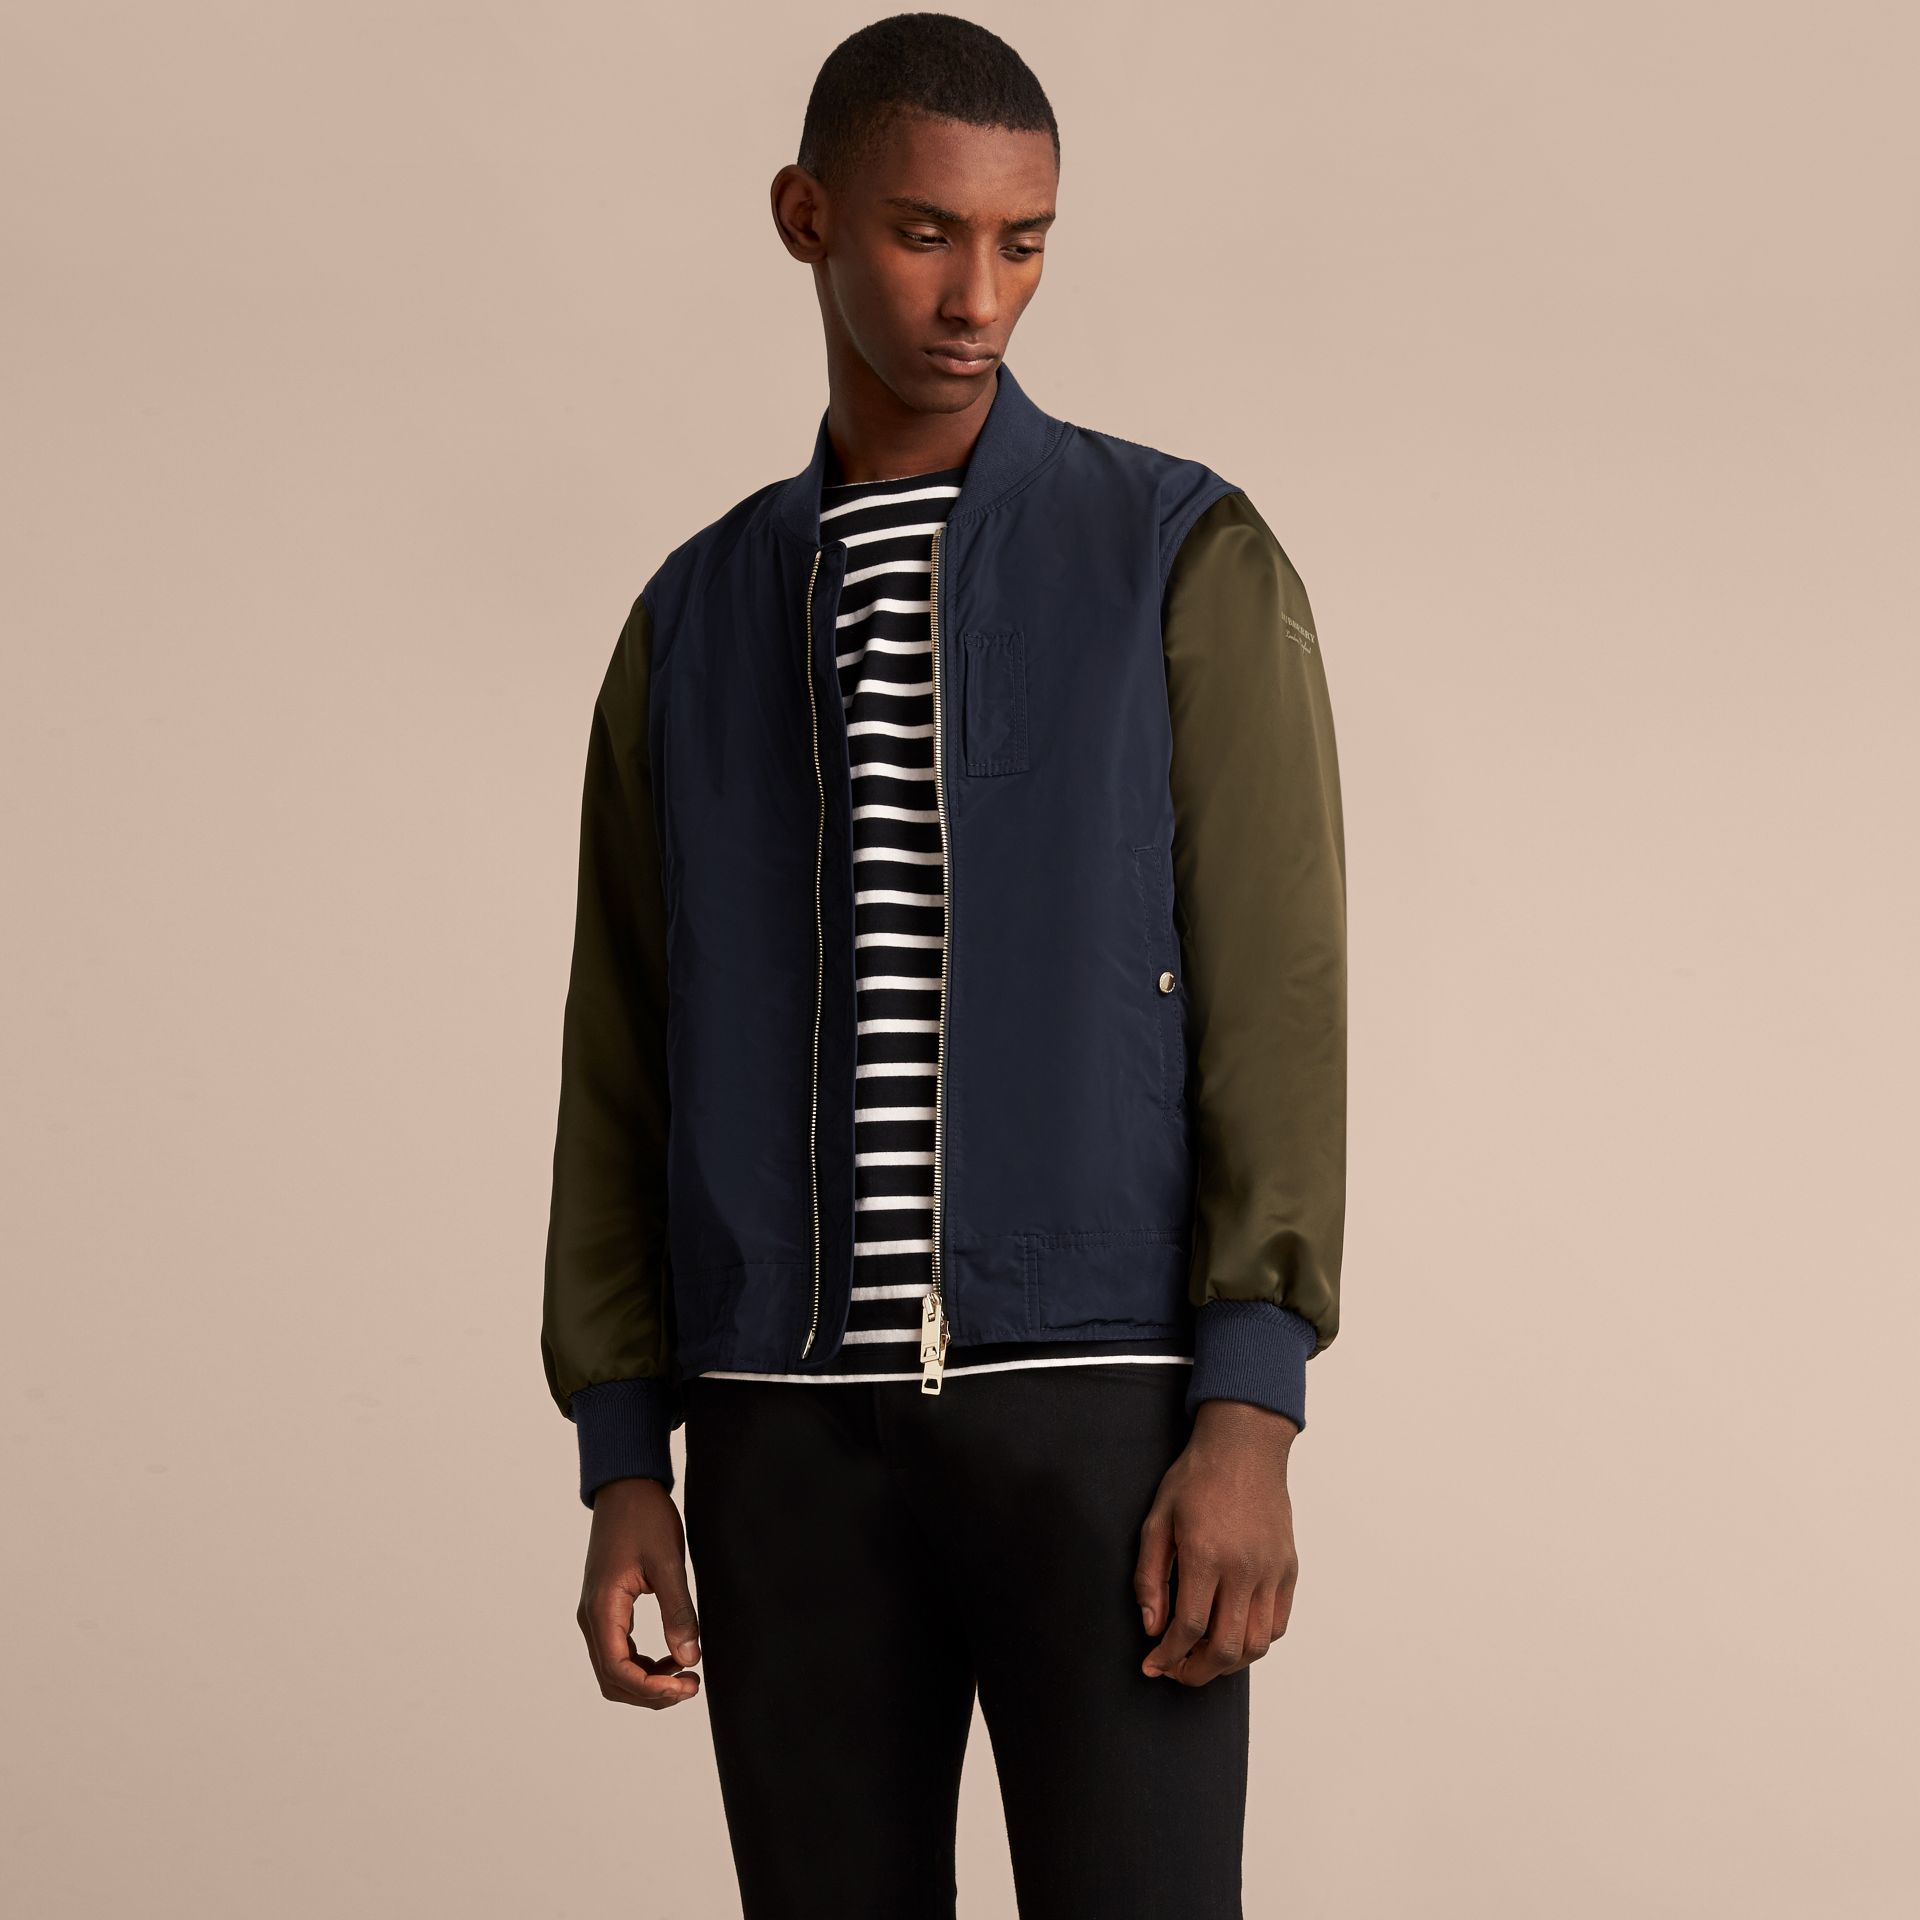 Two-tone Shape-memory Taffeta Bomber Jacket - Men | Burberry - gallery image 6